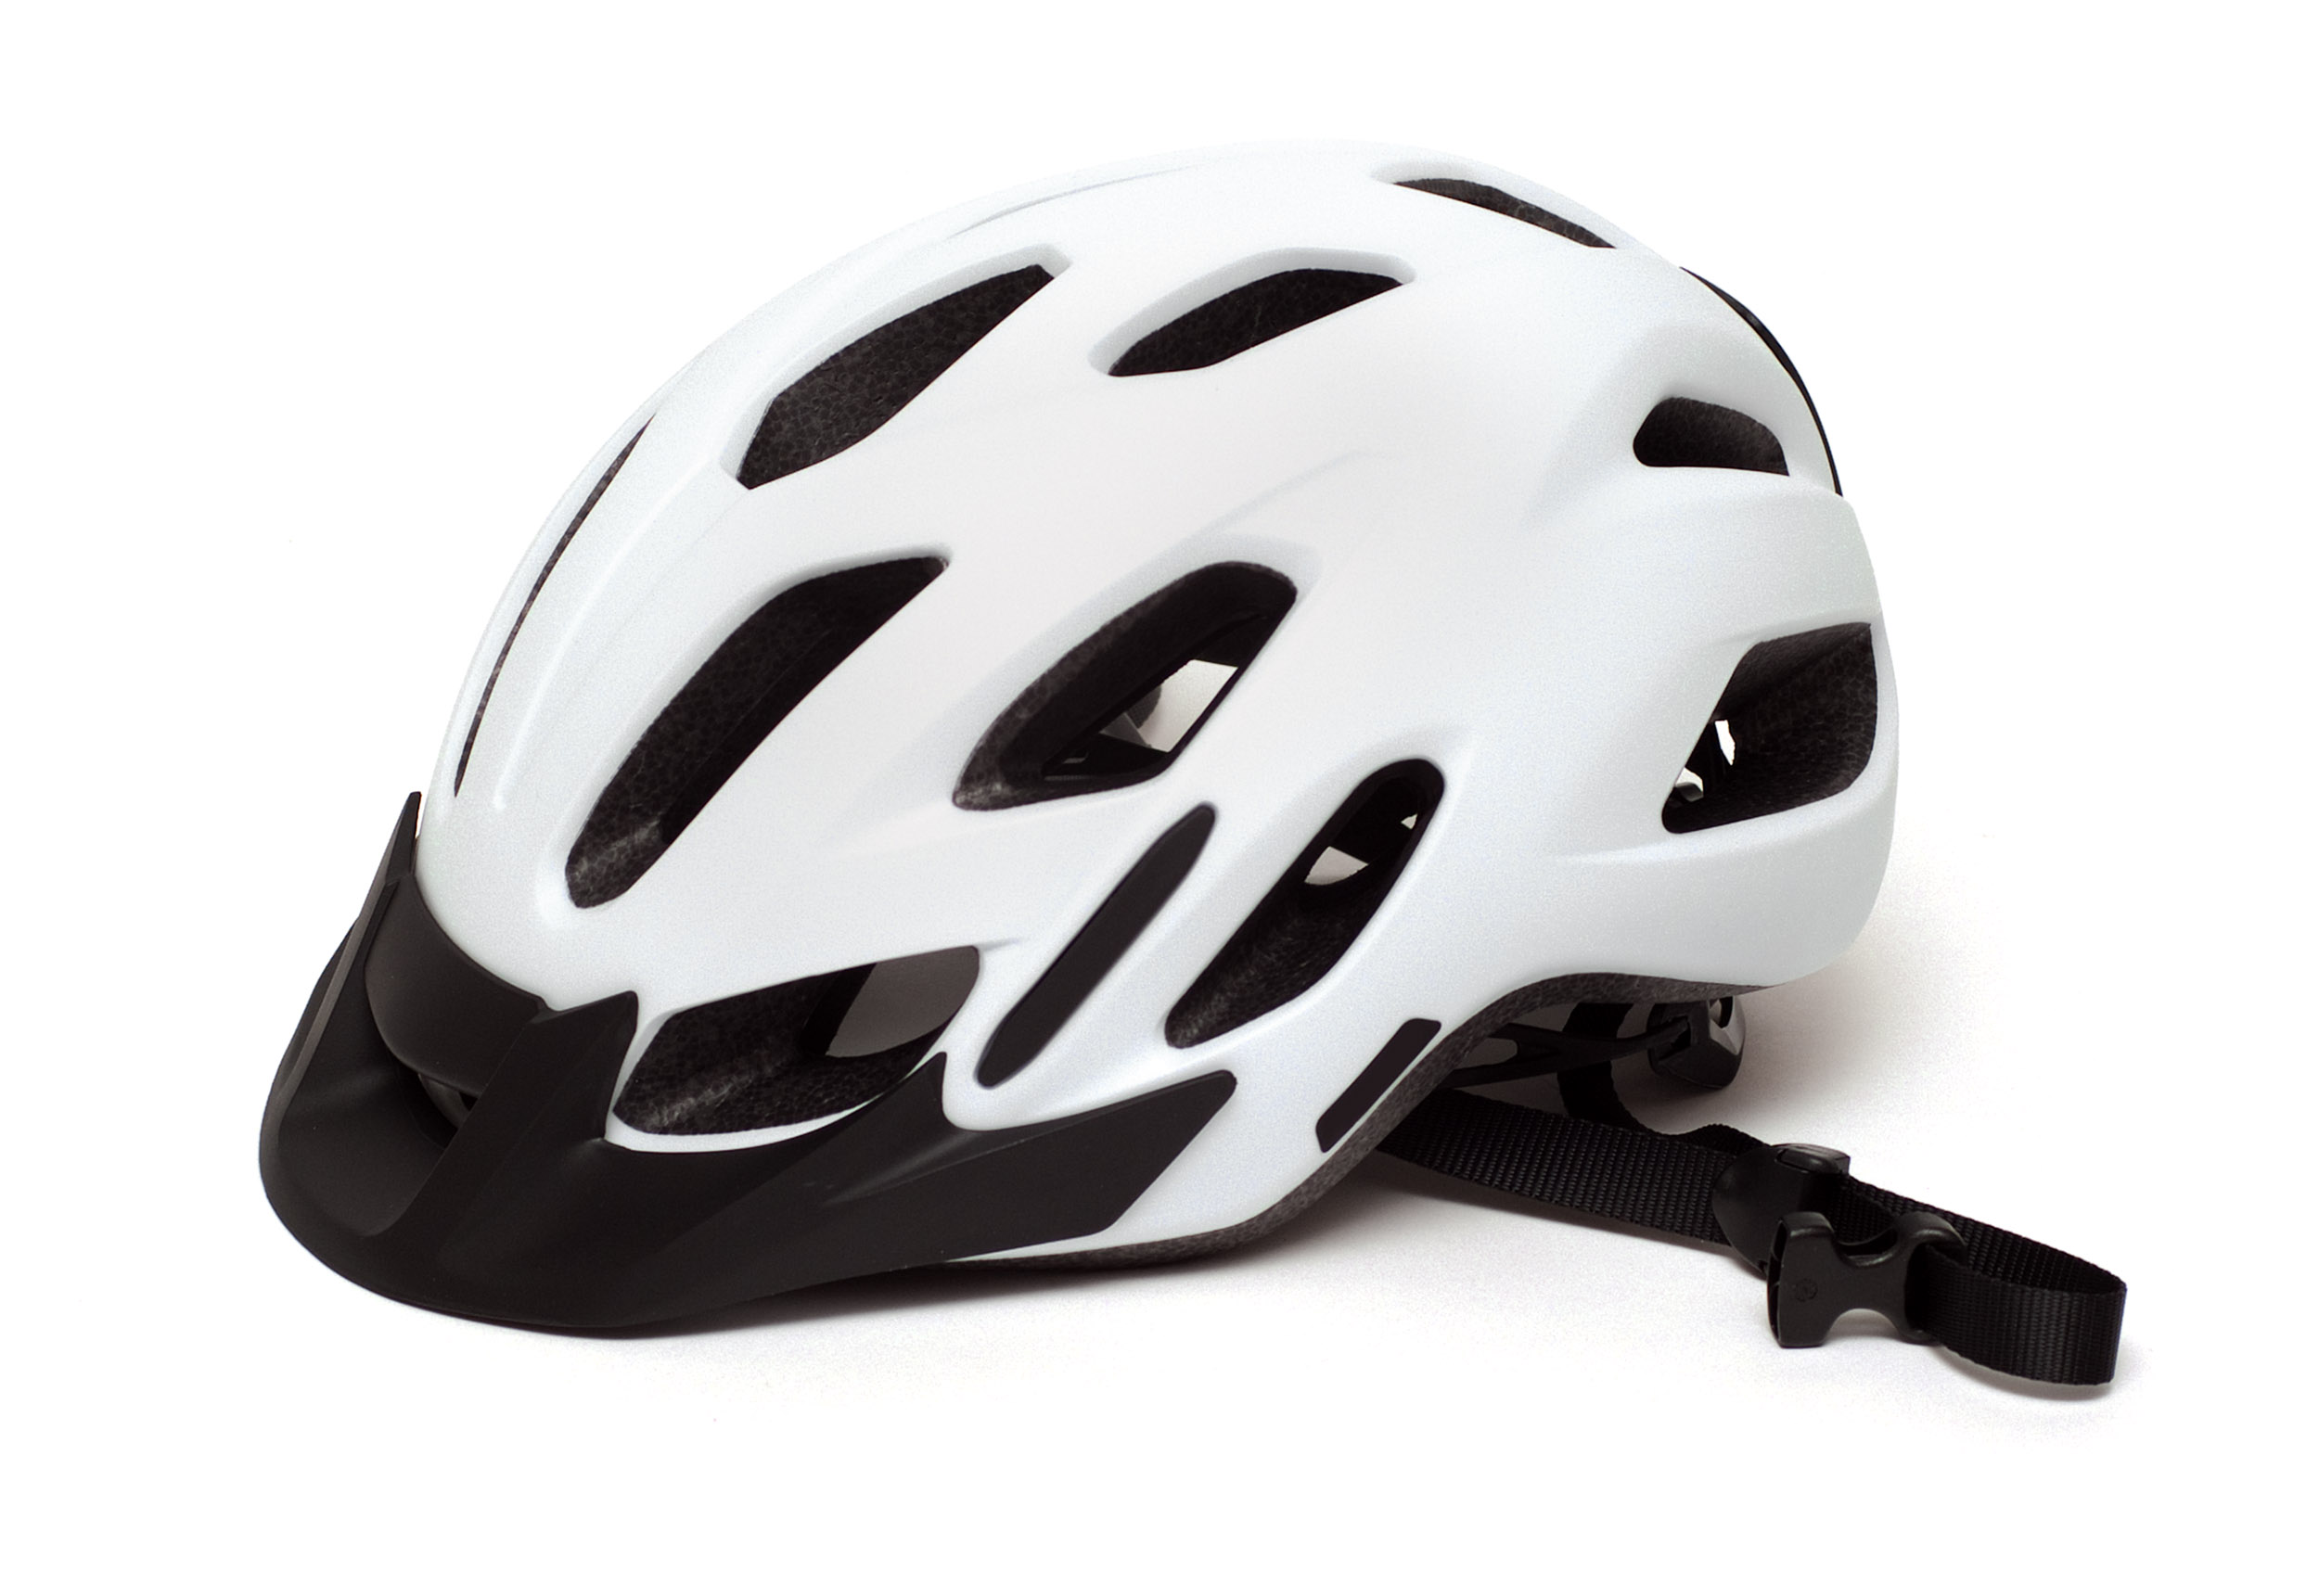 Bicycle Helmet Wikipedia